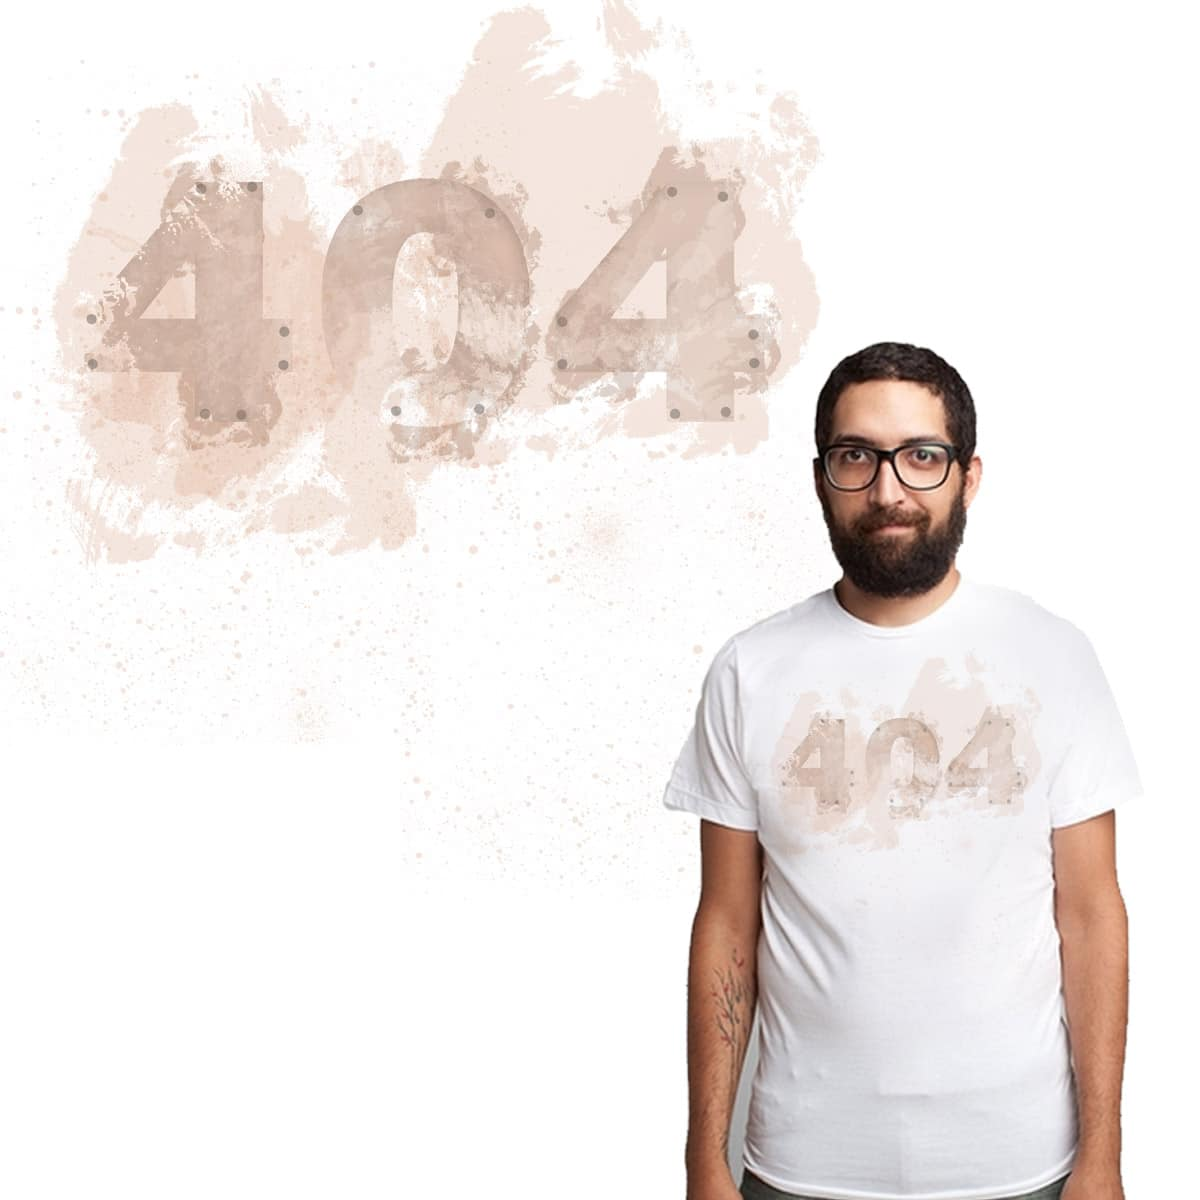 404 by soe on Threadless